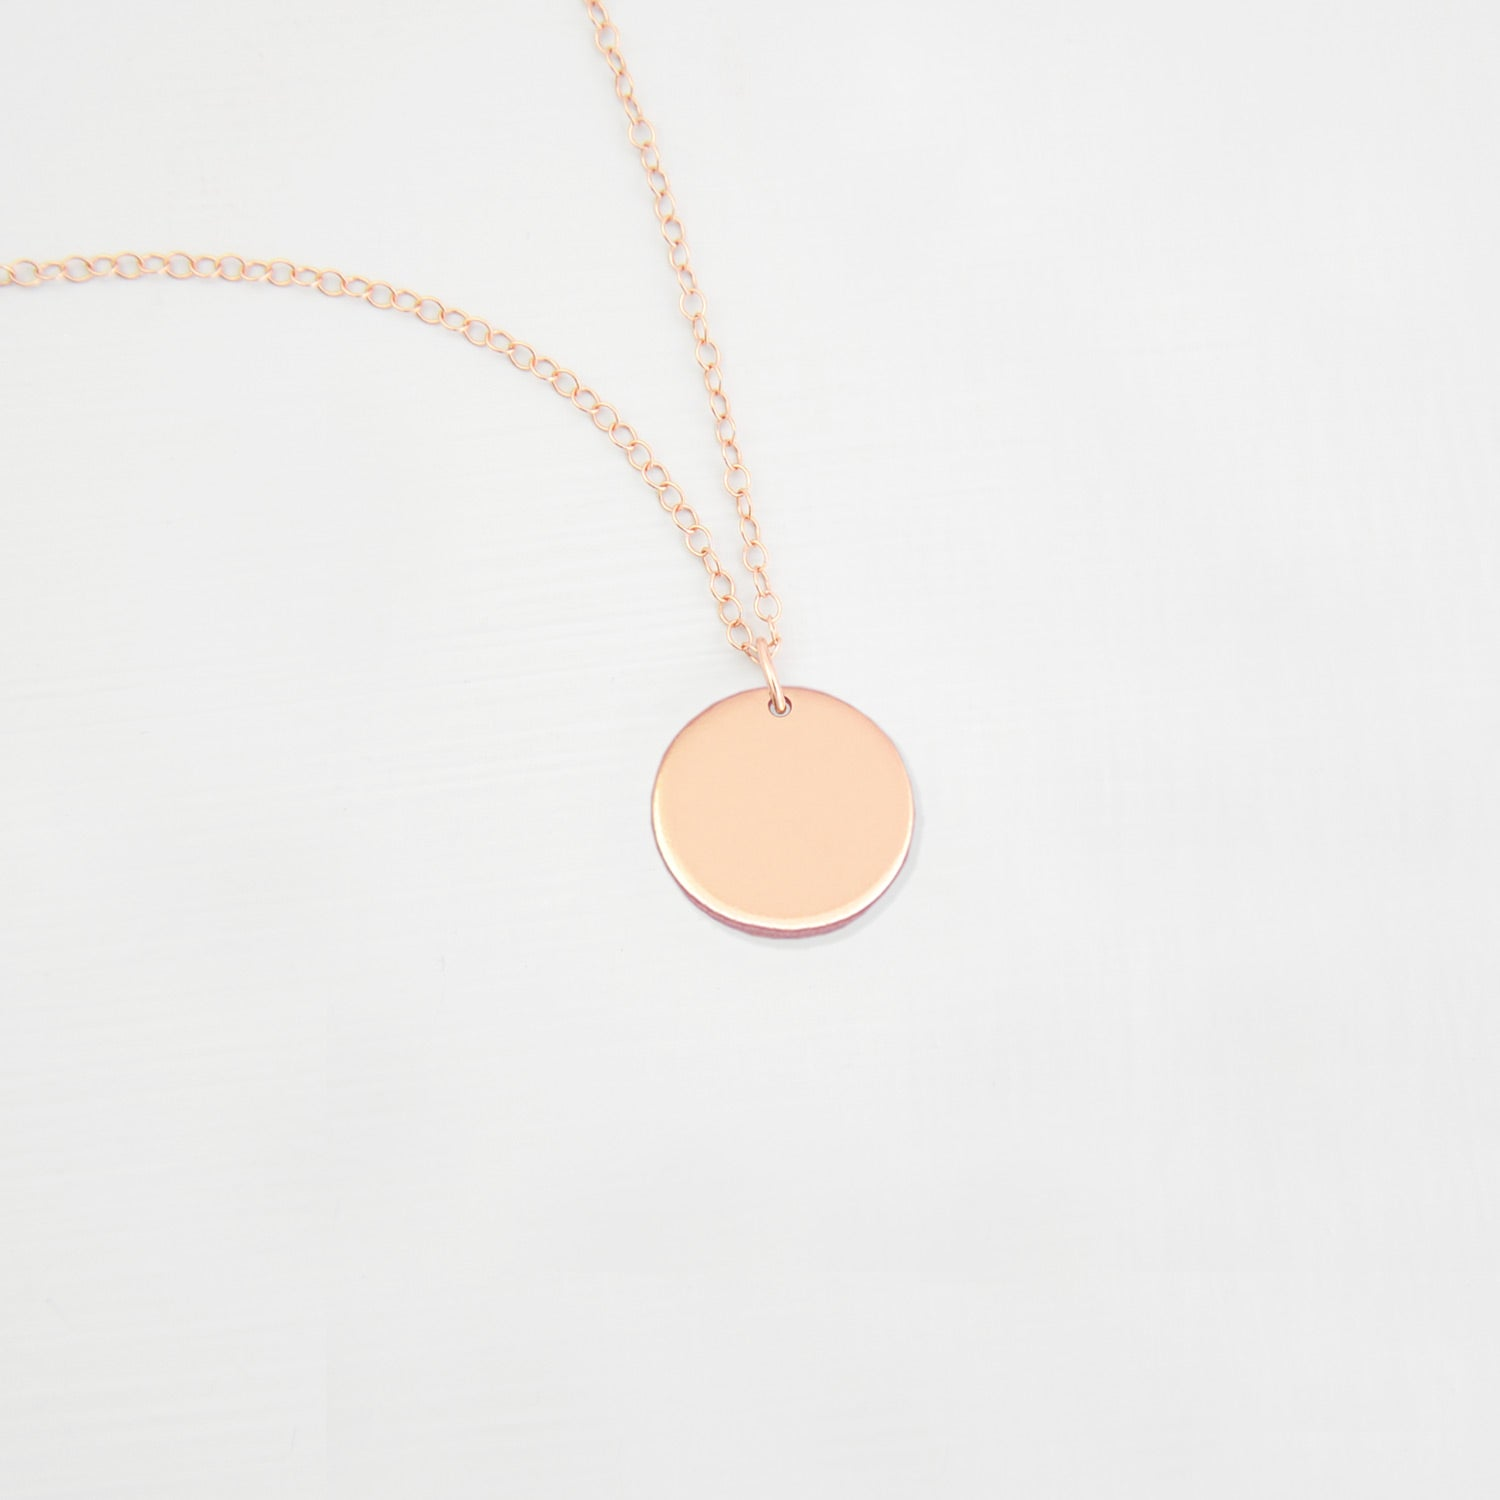 Medium Disc Necklace 'Miri'